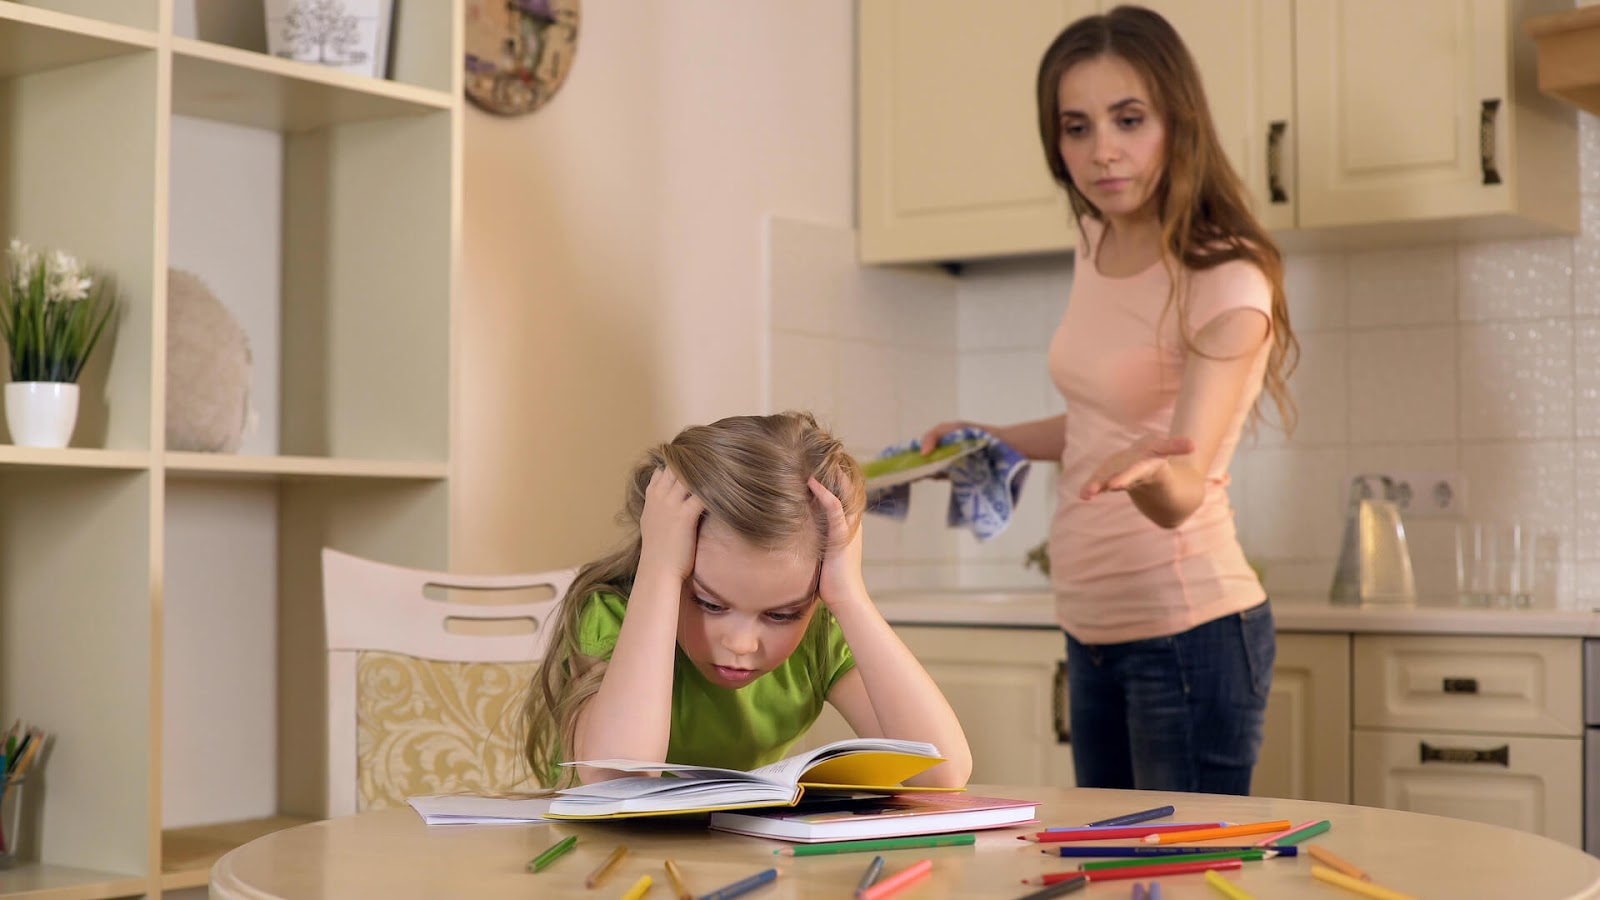 Mom motioning to daughter in a frustrating manner